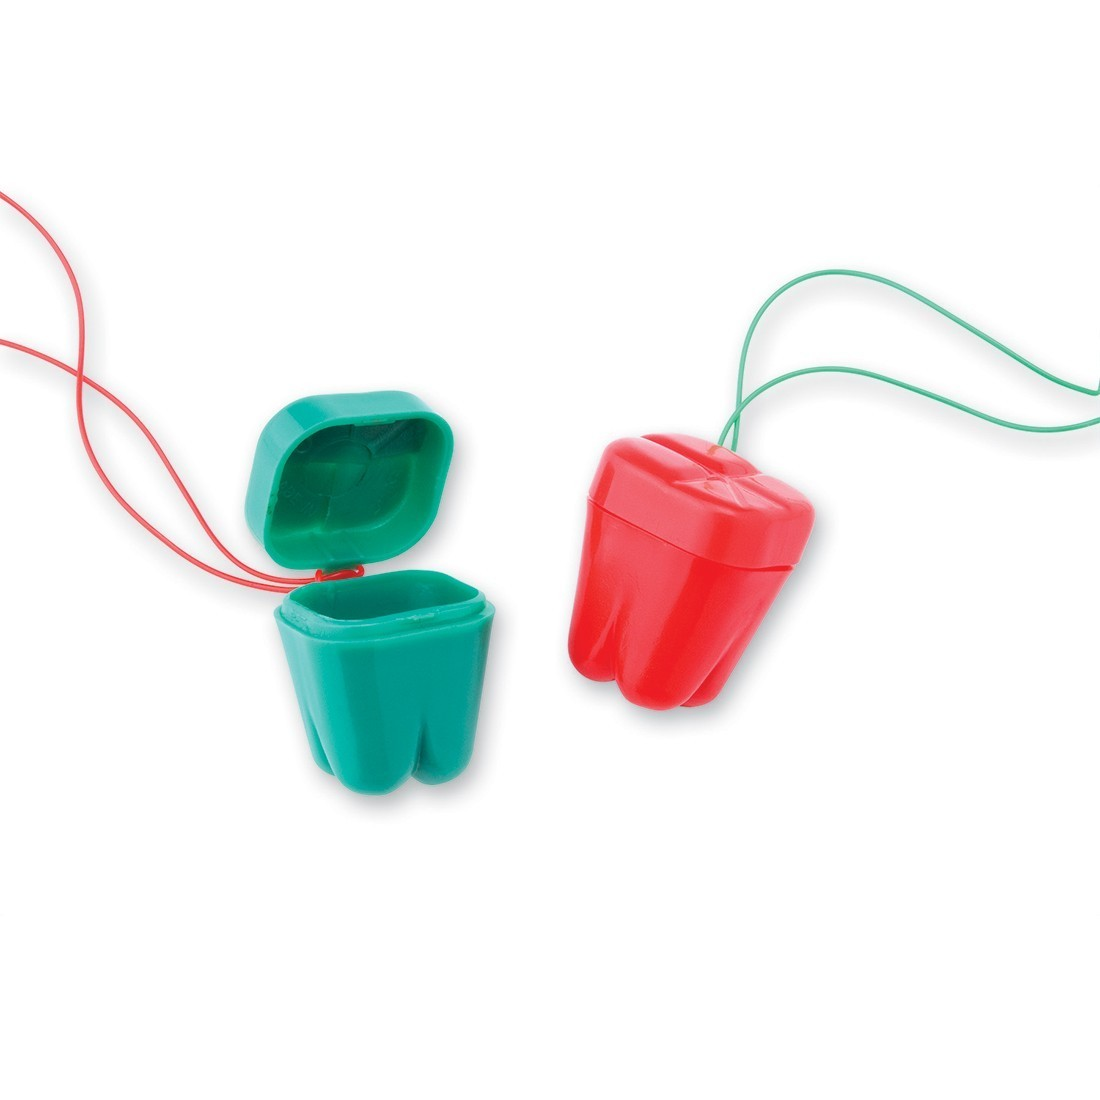 Holiday Tooth Holders [image]